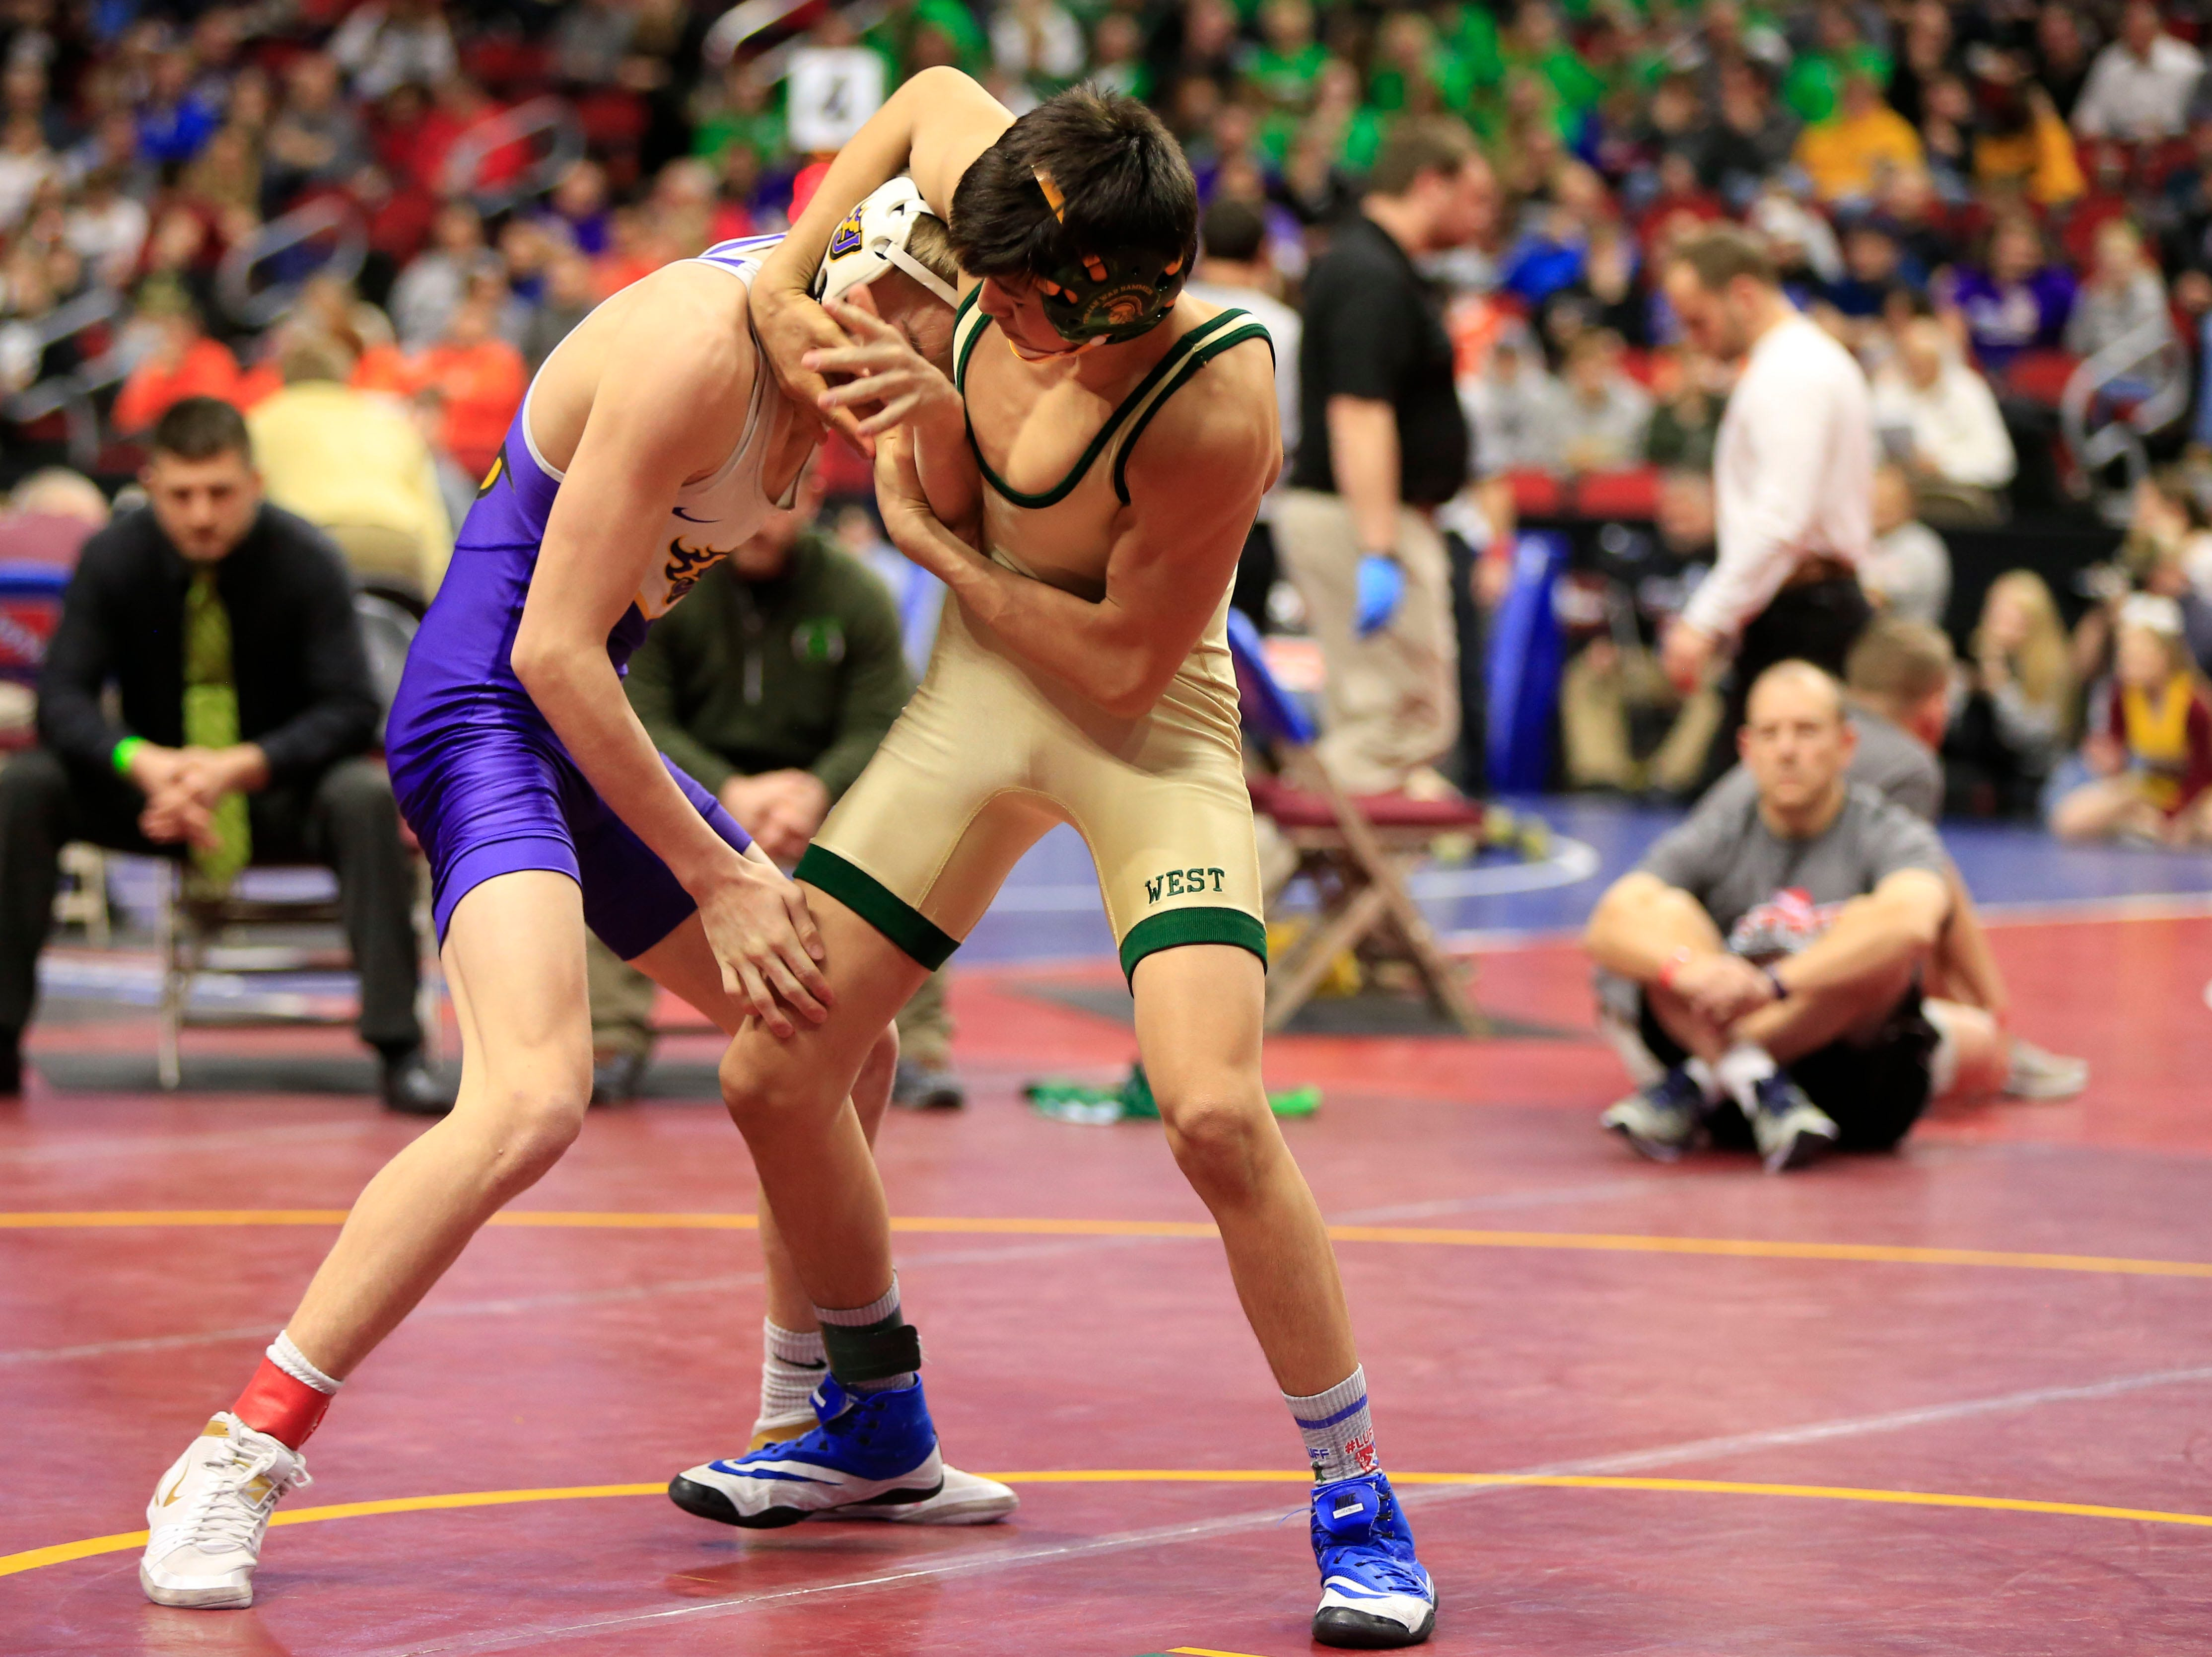 Hunter Garvin of Iowa City, West defeats Thomas Edwards of Johnston during a 120 Lb 3A semifinal match at the state wrestling tournament Friday, Feb. 15, 2019.